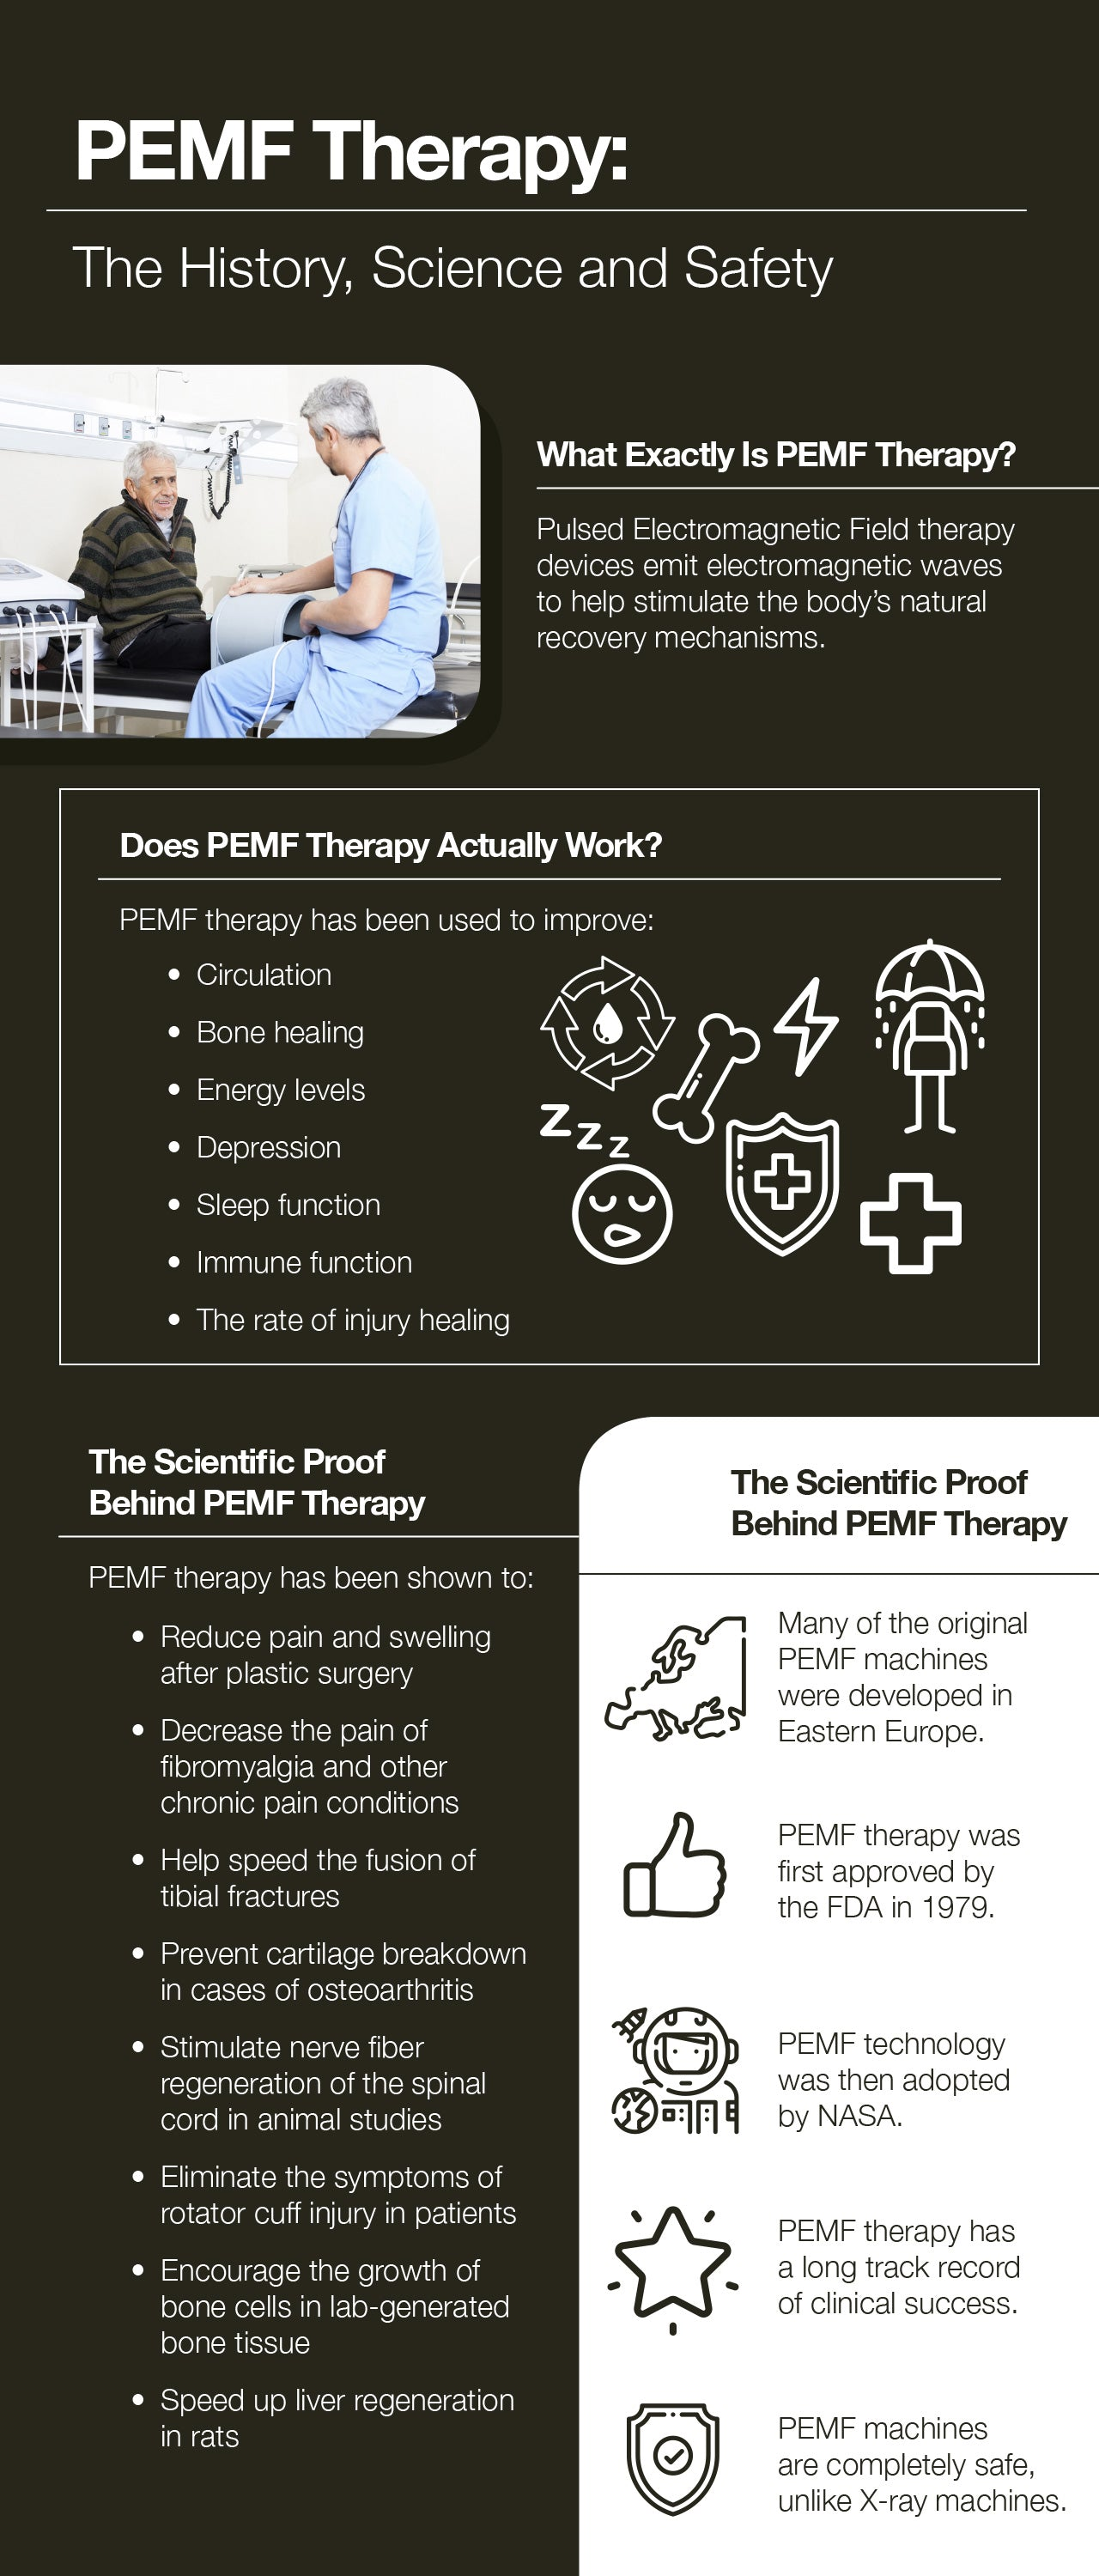 PEMF therapy: the history, science, and safety.